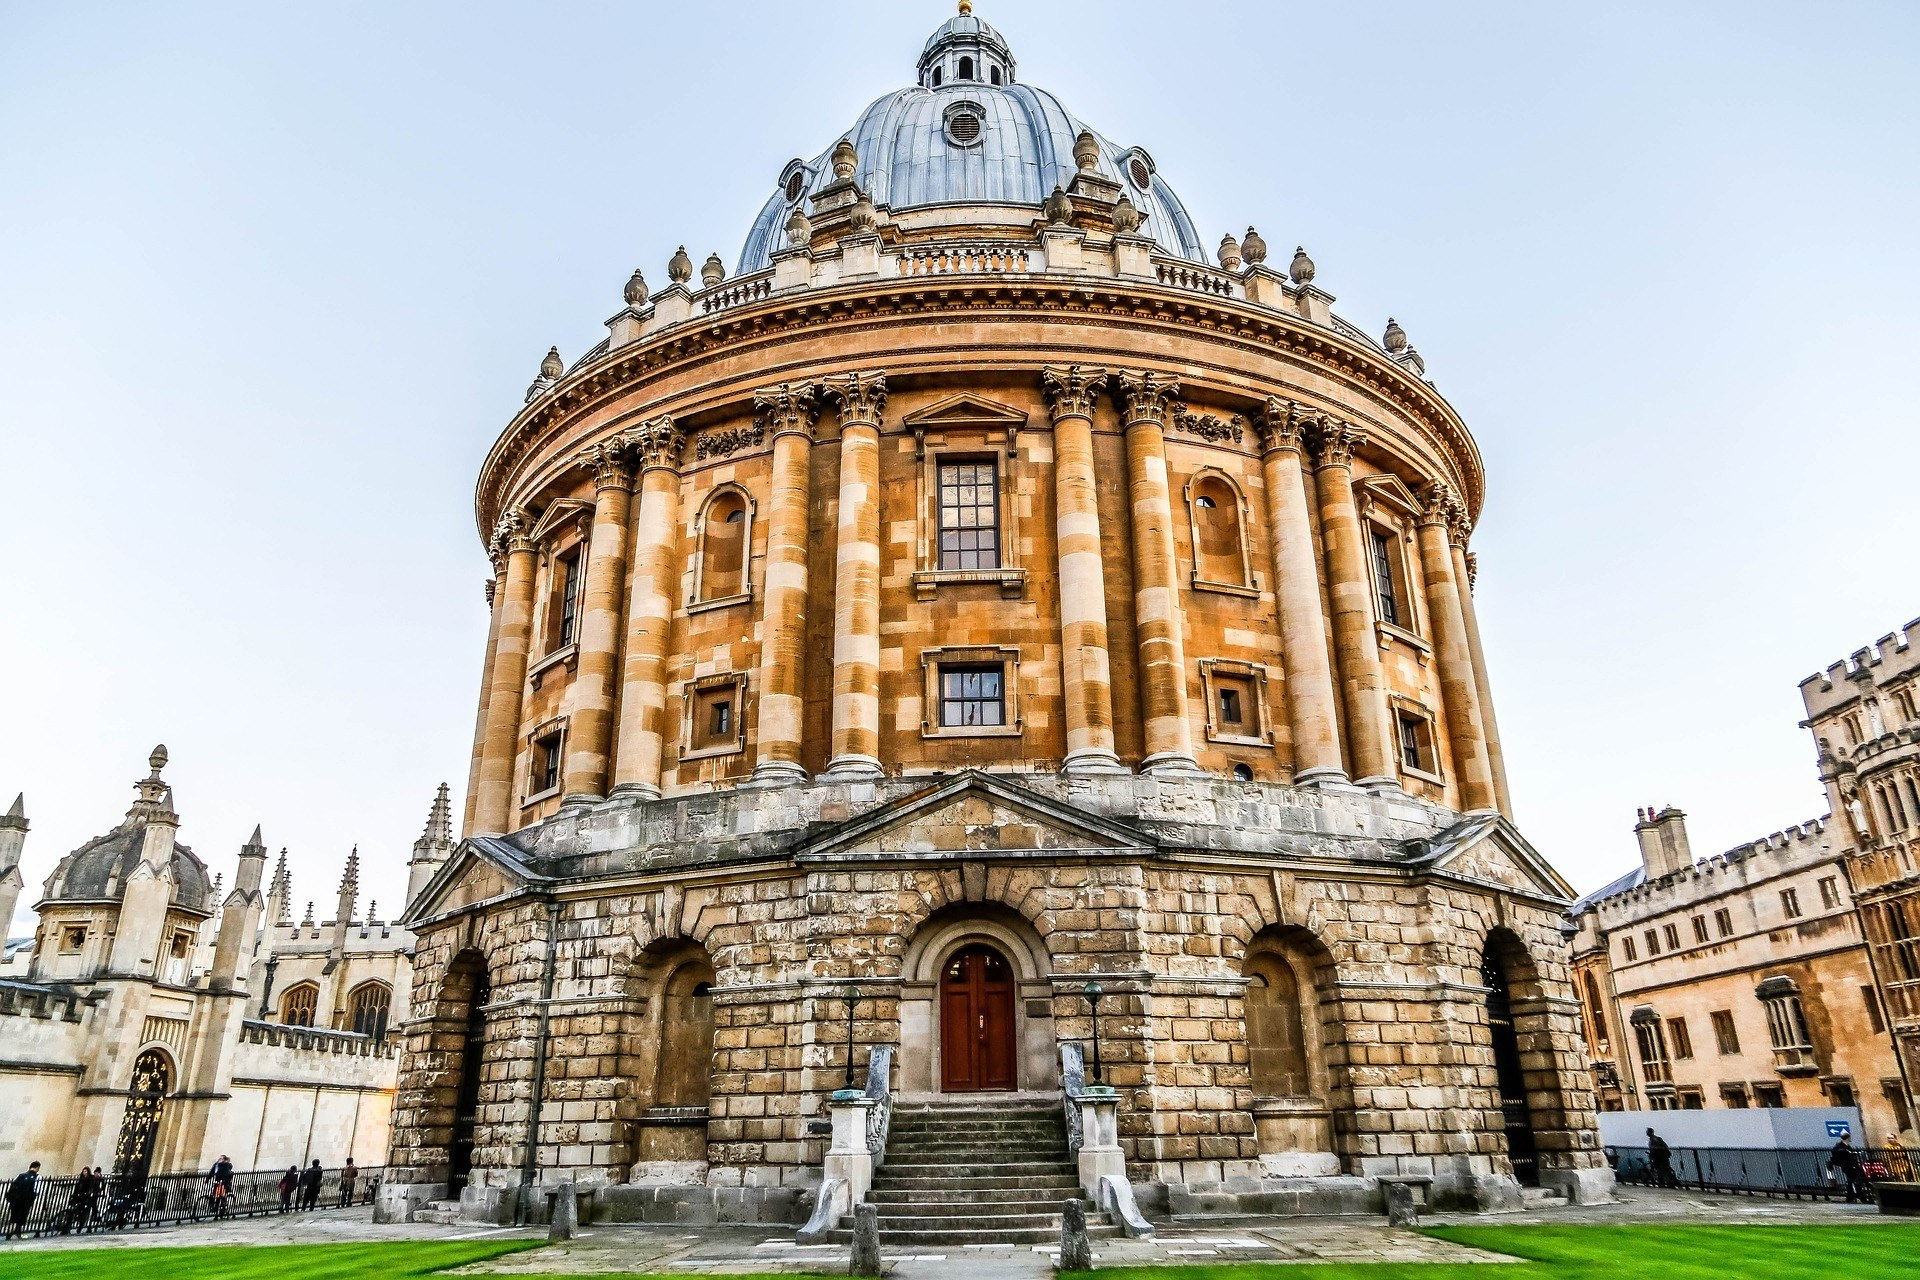 Campus Building at the University of Oxford